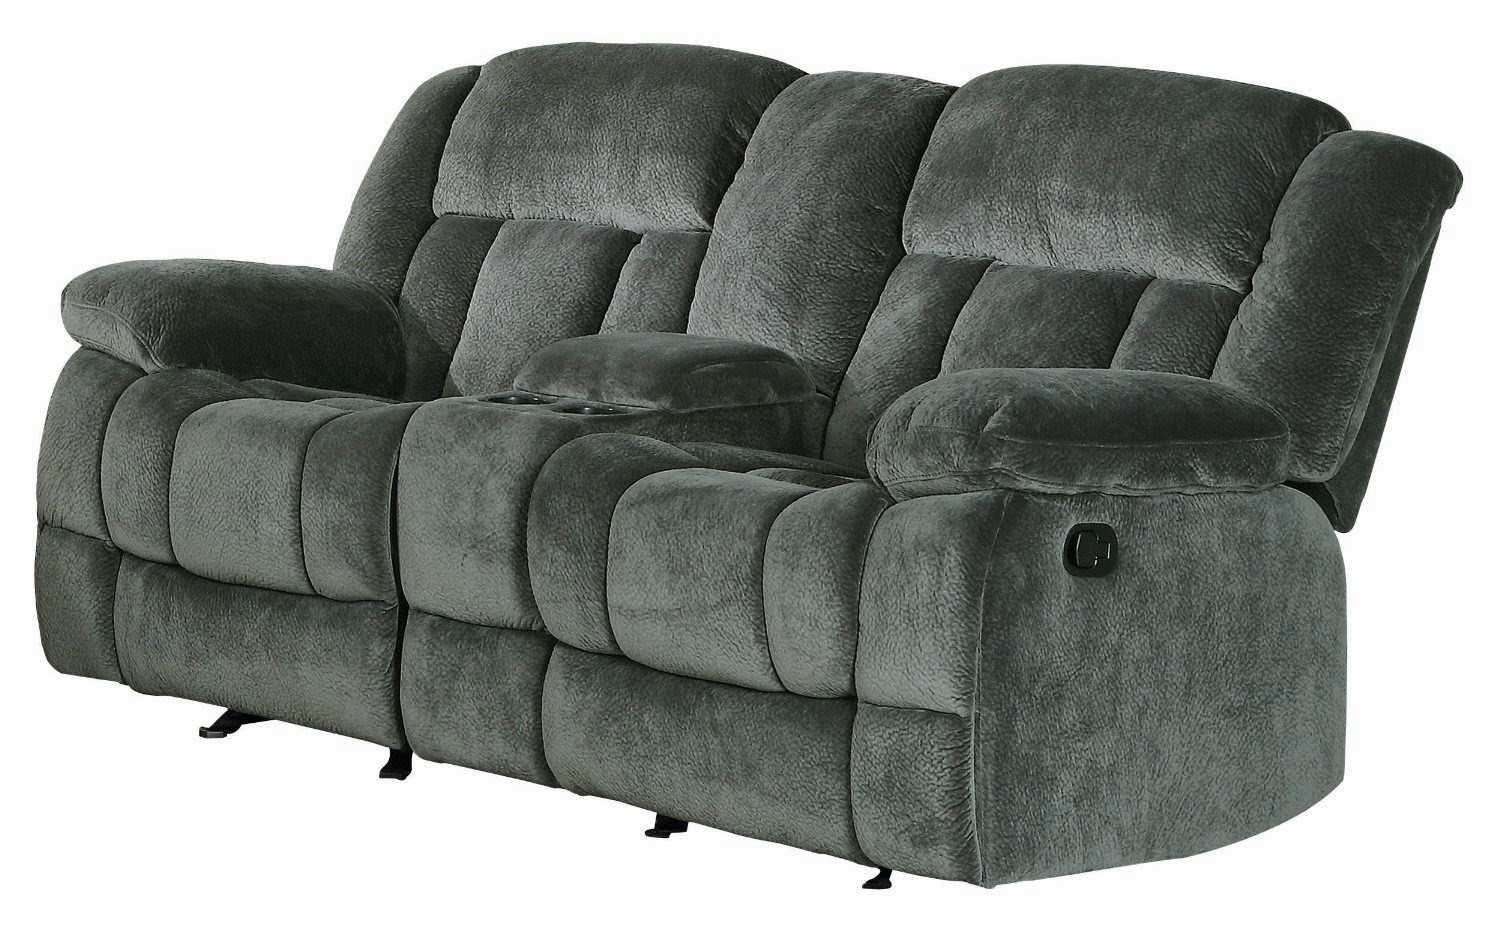 Home Theater Sofas Uk Teddy Sofa Bed Reclining For Sale Cheap Two Seater Recliner